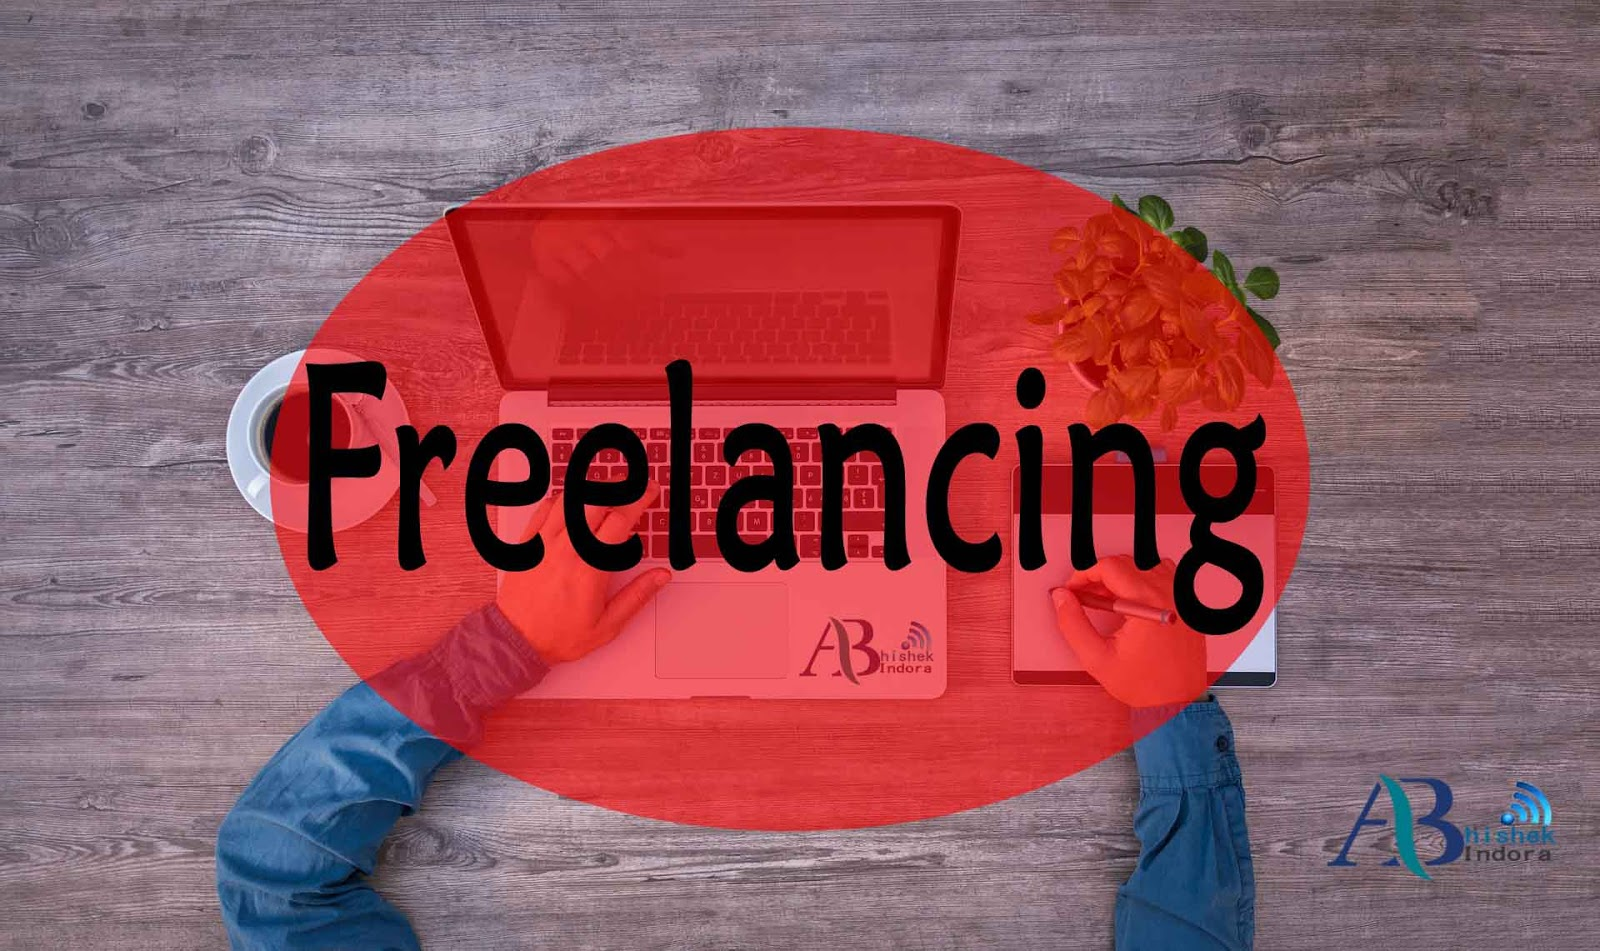 how to freelance,how to make money freelancing,freelancing tips,how to become a freelancer,start freelancing,make money freelancing,how to start freelance writing,how to be a freelancer,how to do freelancing in pakistan,how to become a freelance writer,what is freelancing